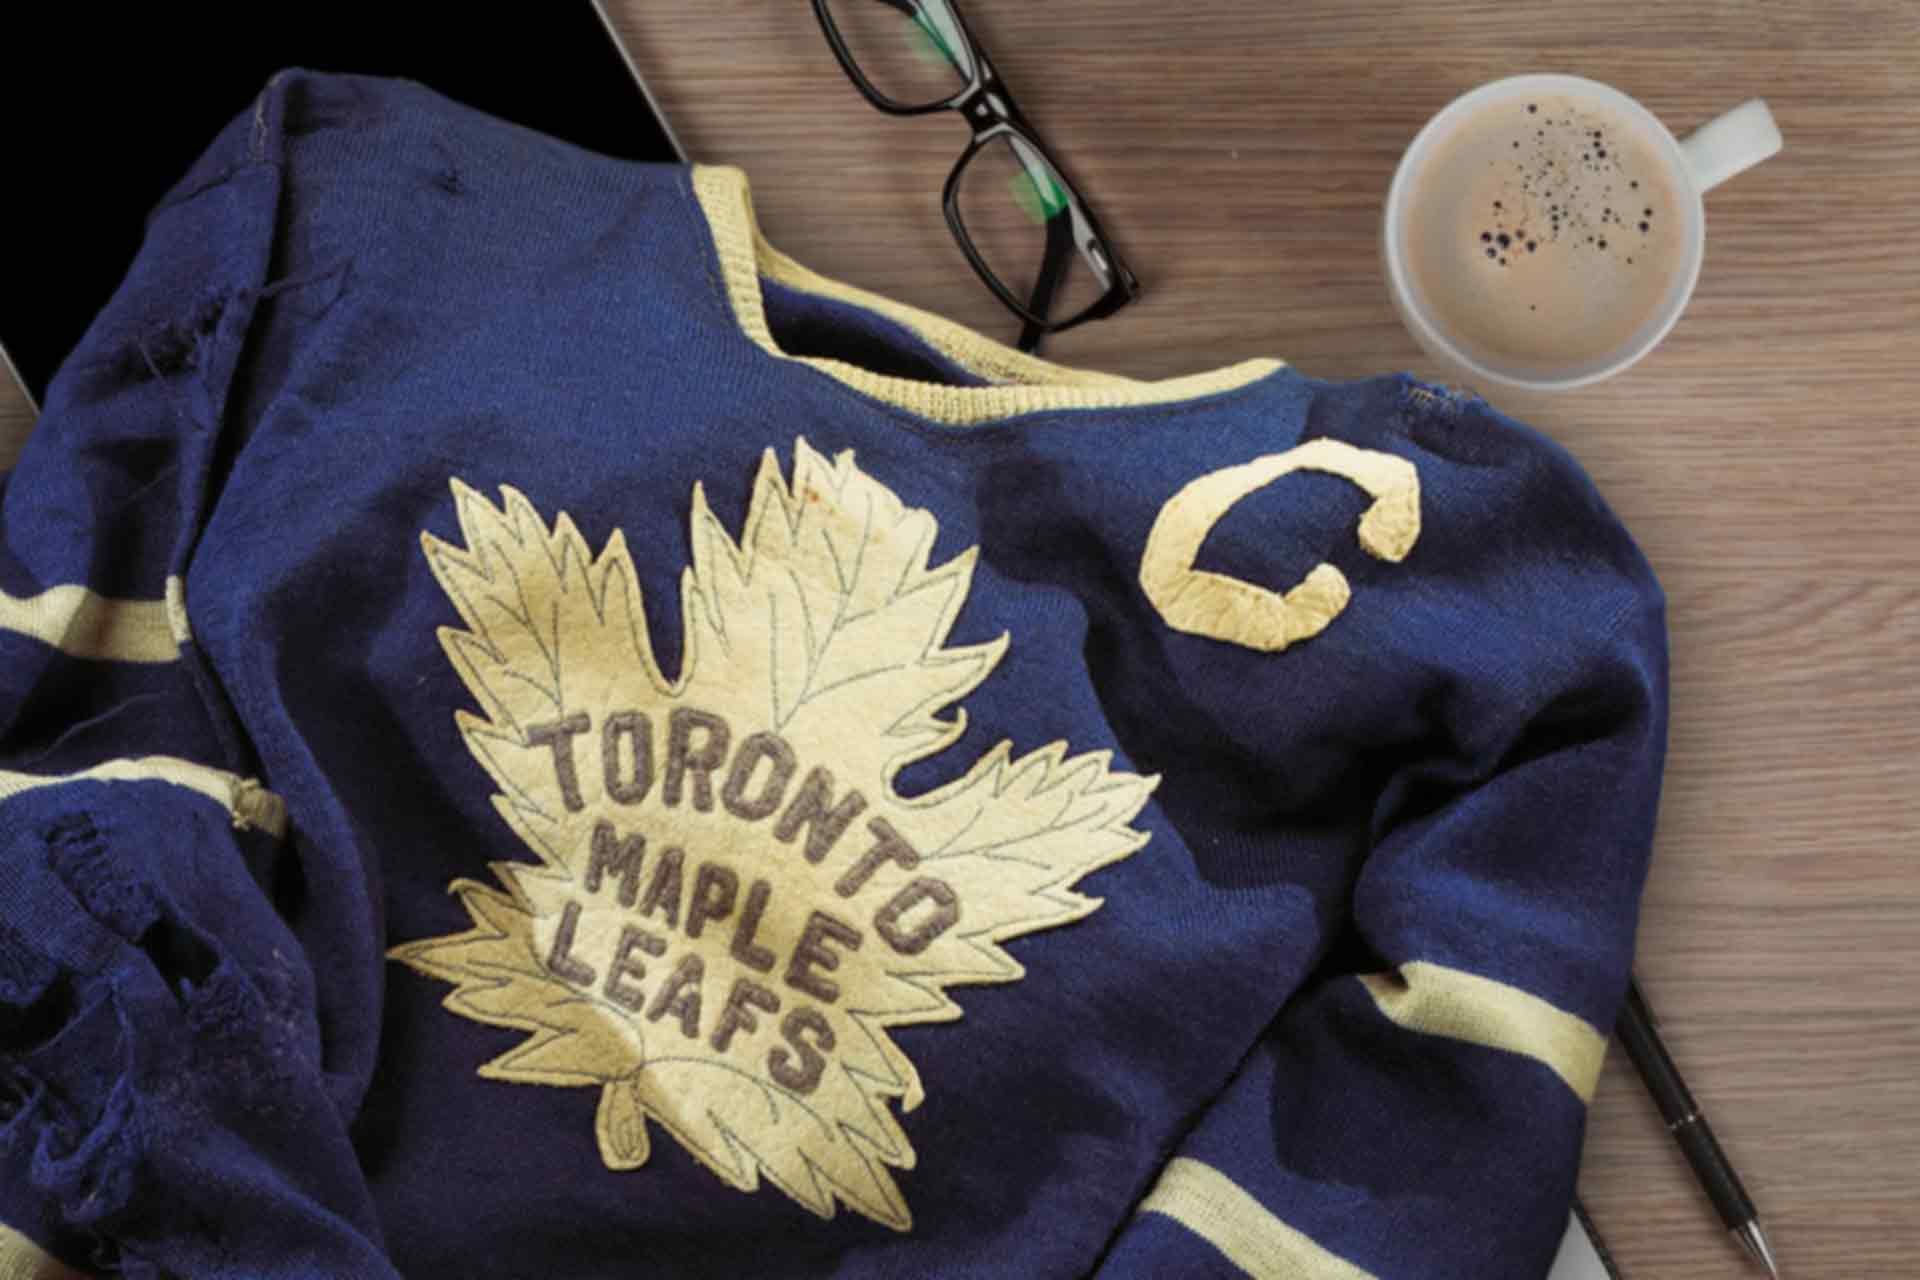 Vintage Toronto Maple Leafs Hockey Jersey